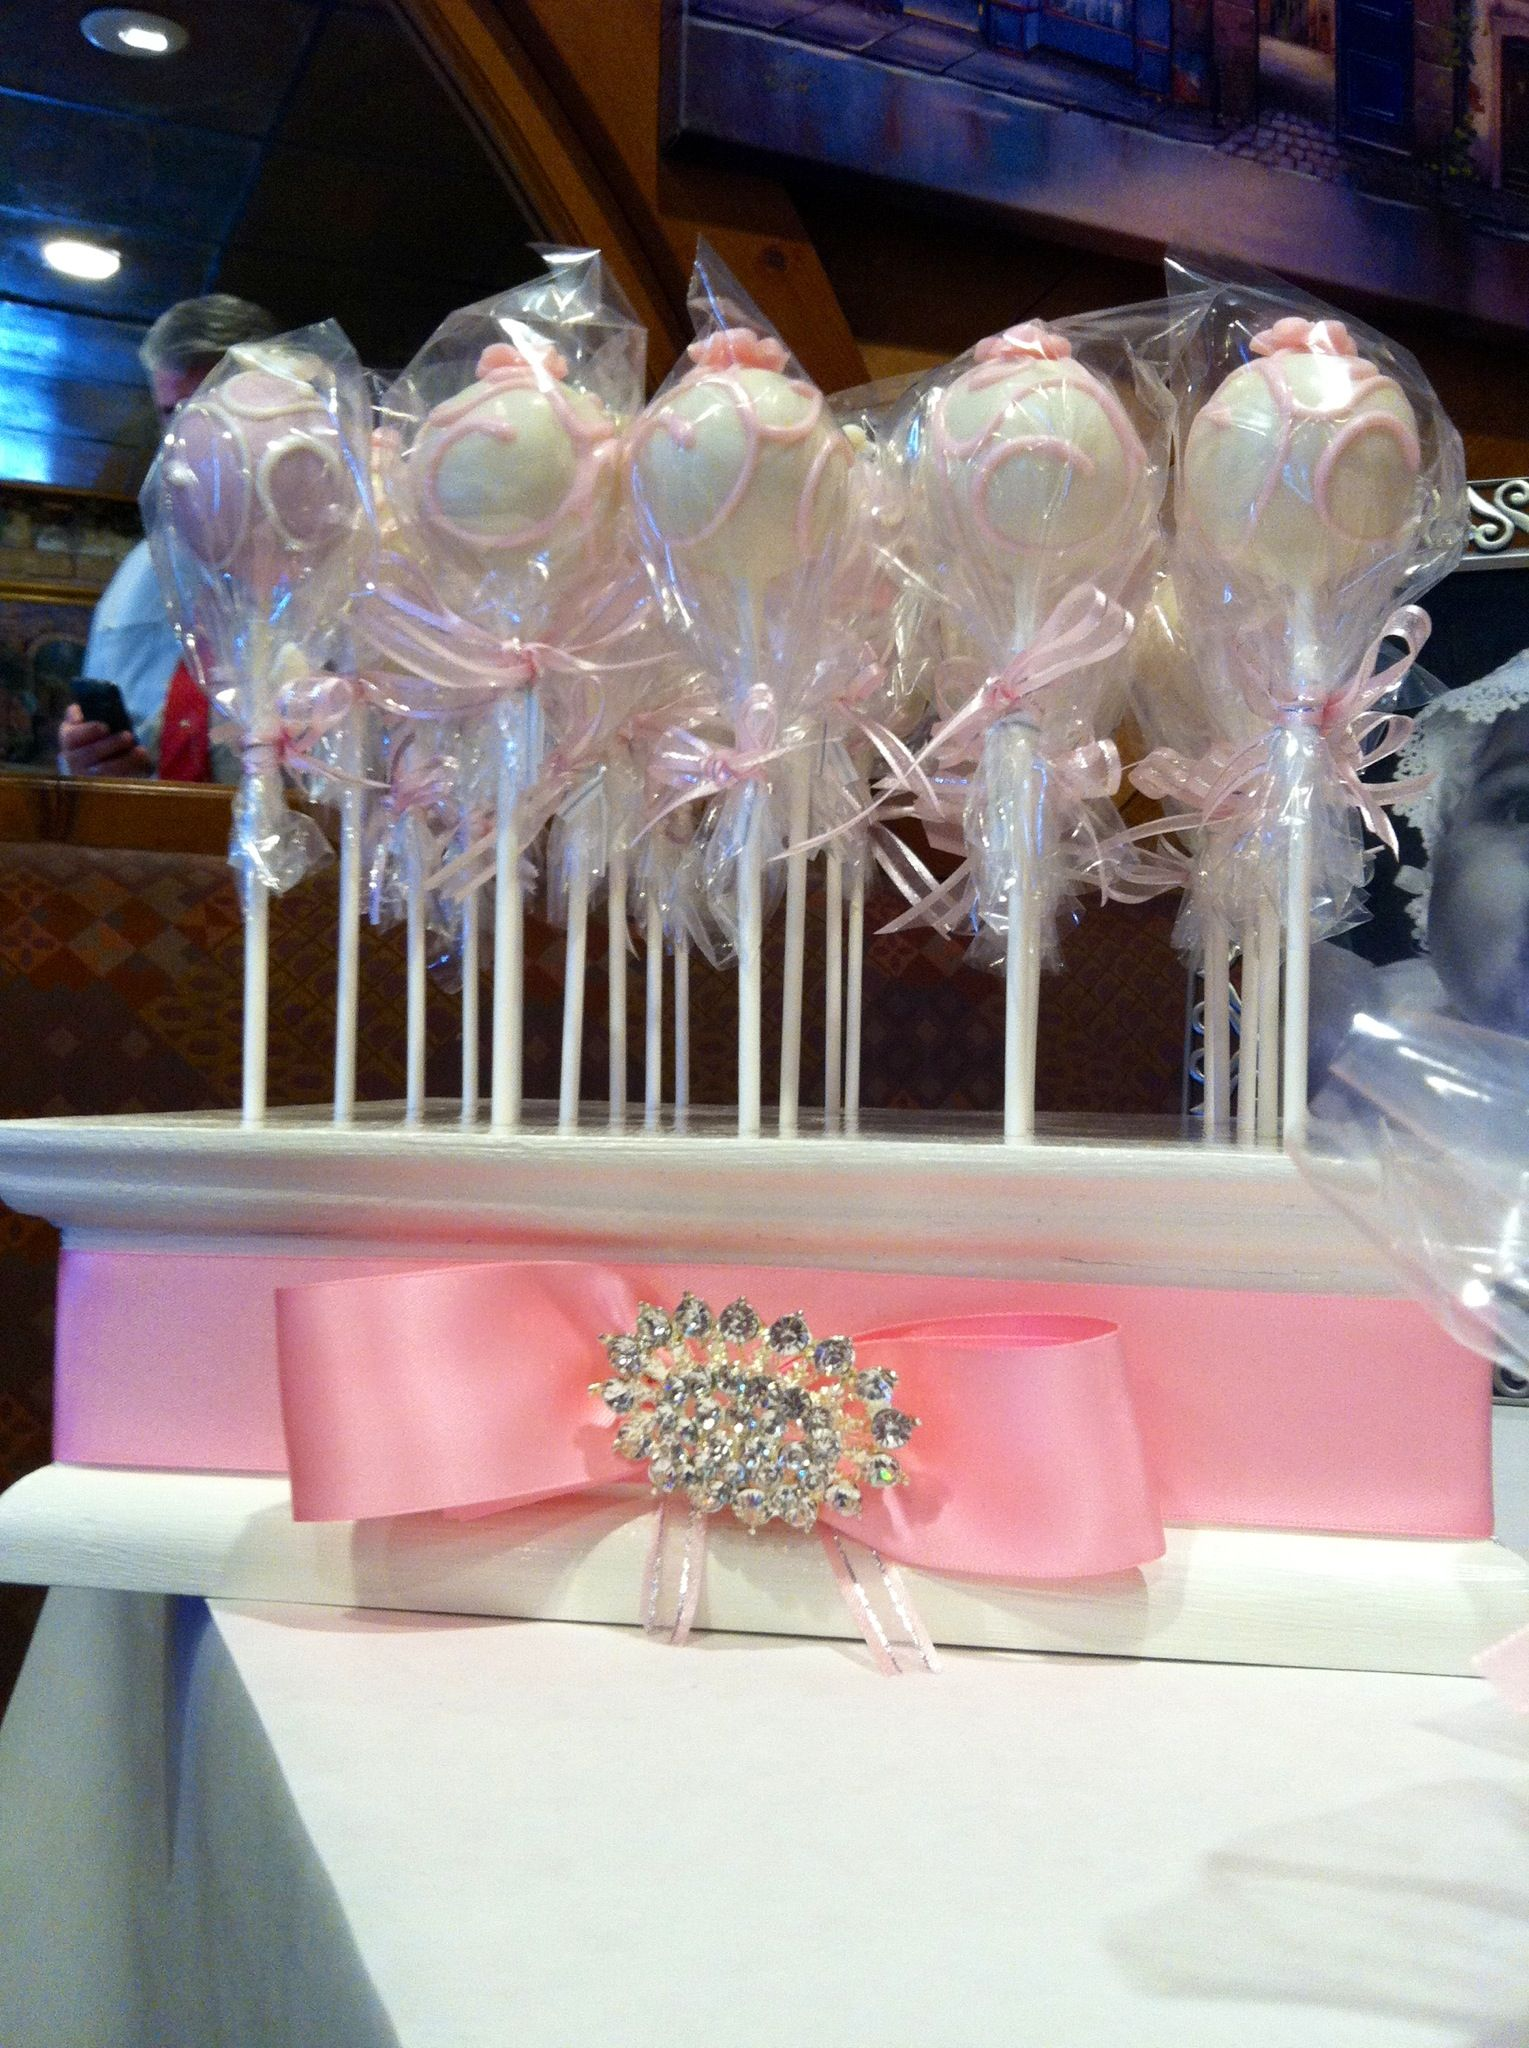 Janine S Cake Art : Delicious cake pops by Janine Brown (fb) and cake pop ...